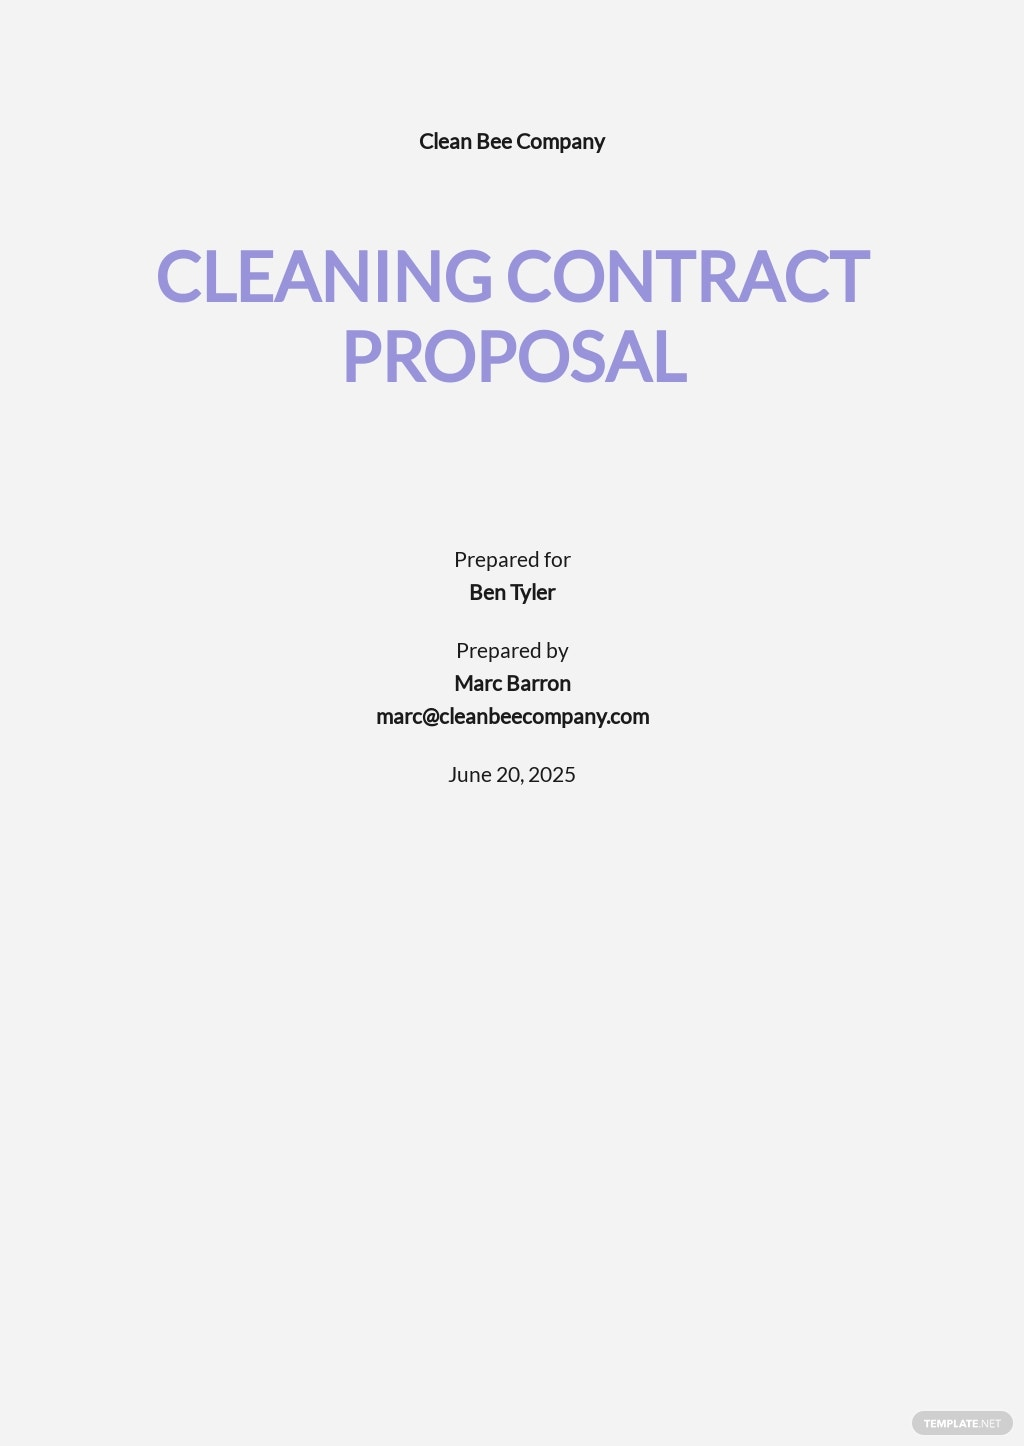 Sample Cleaning Contract Proposal Template.jpe